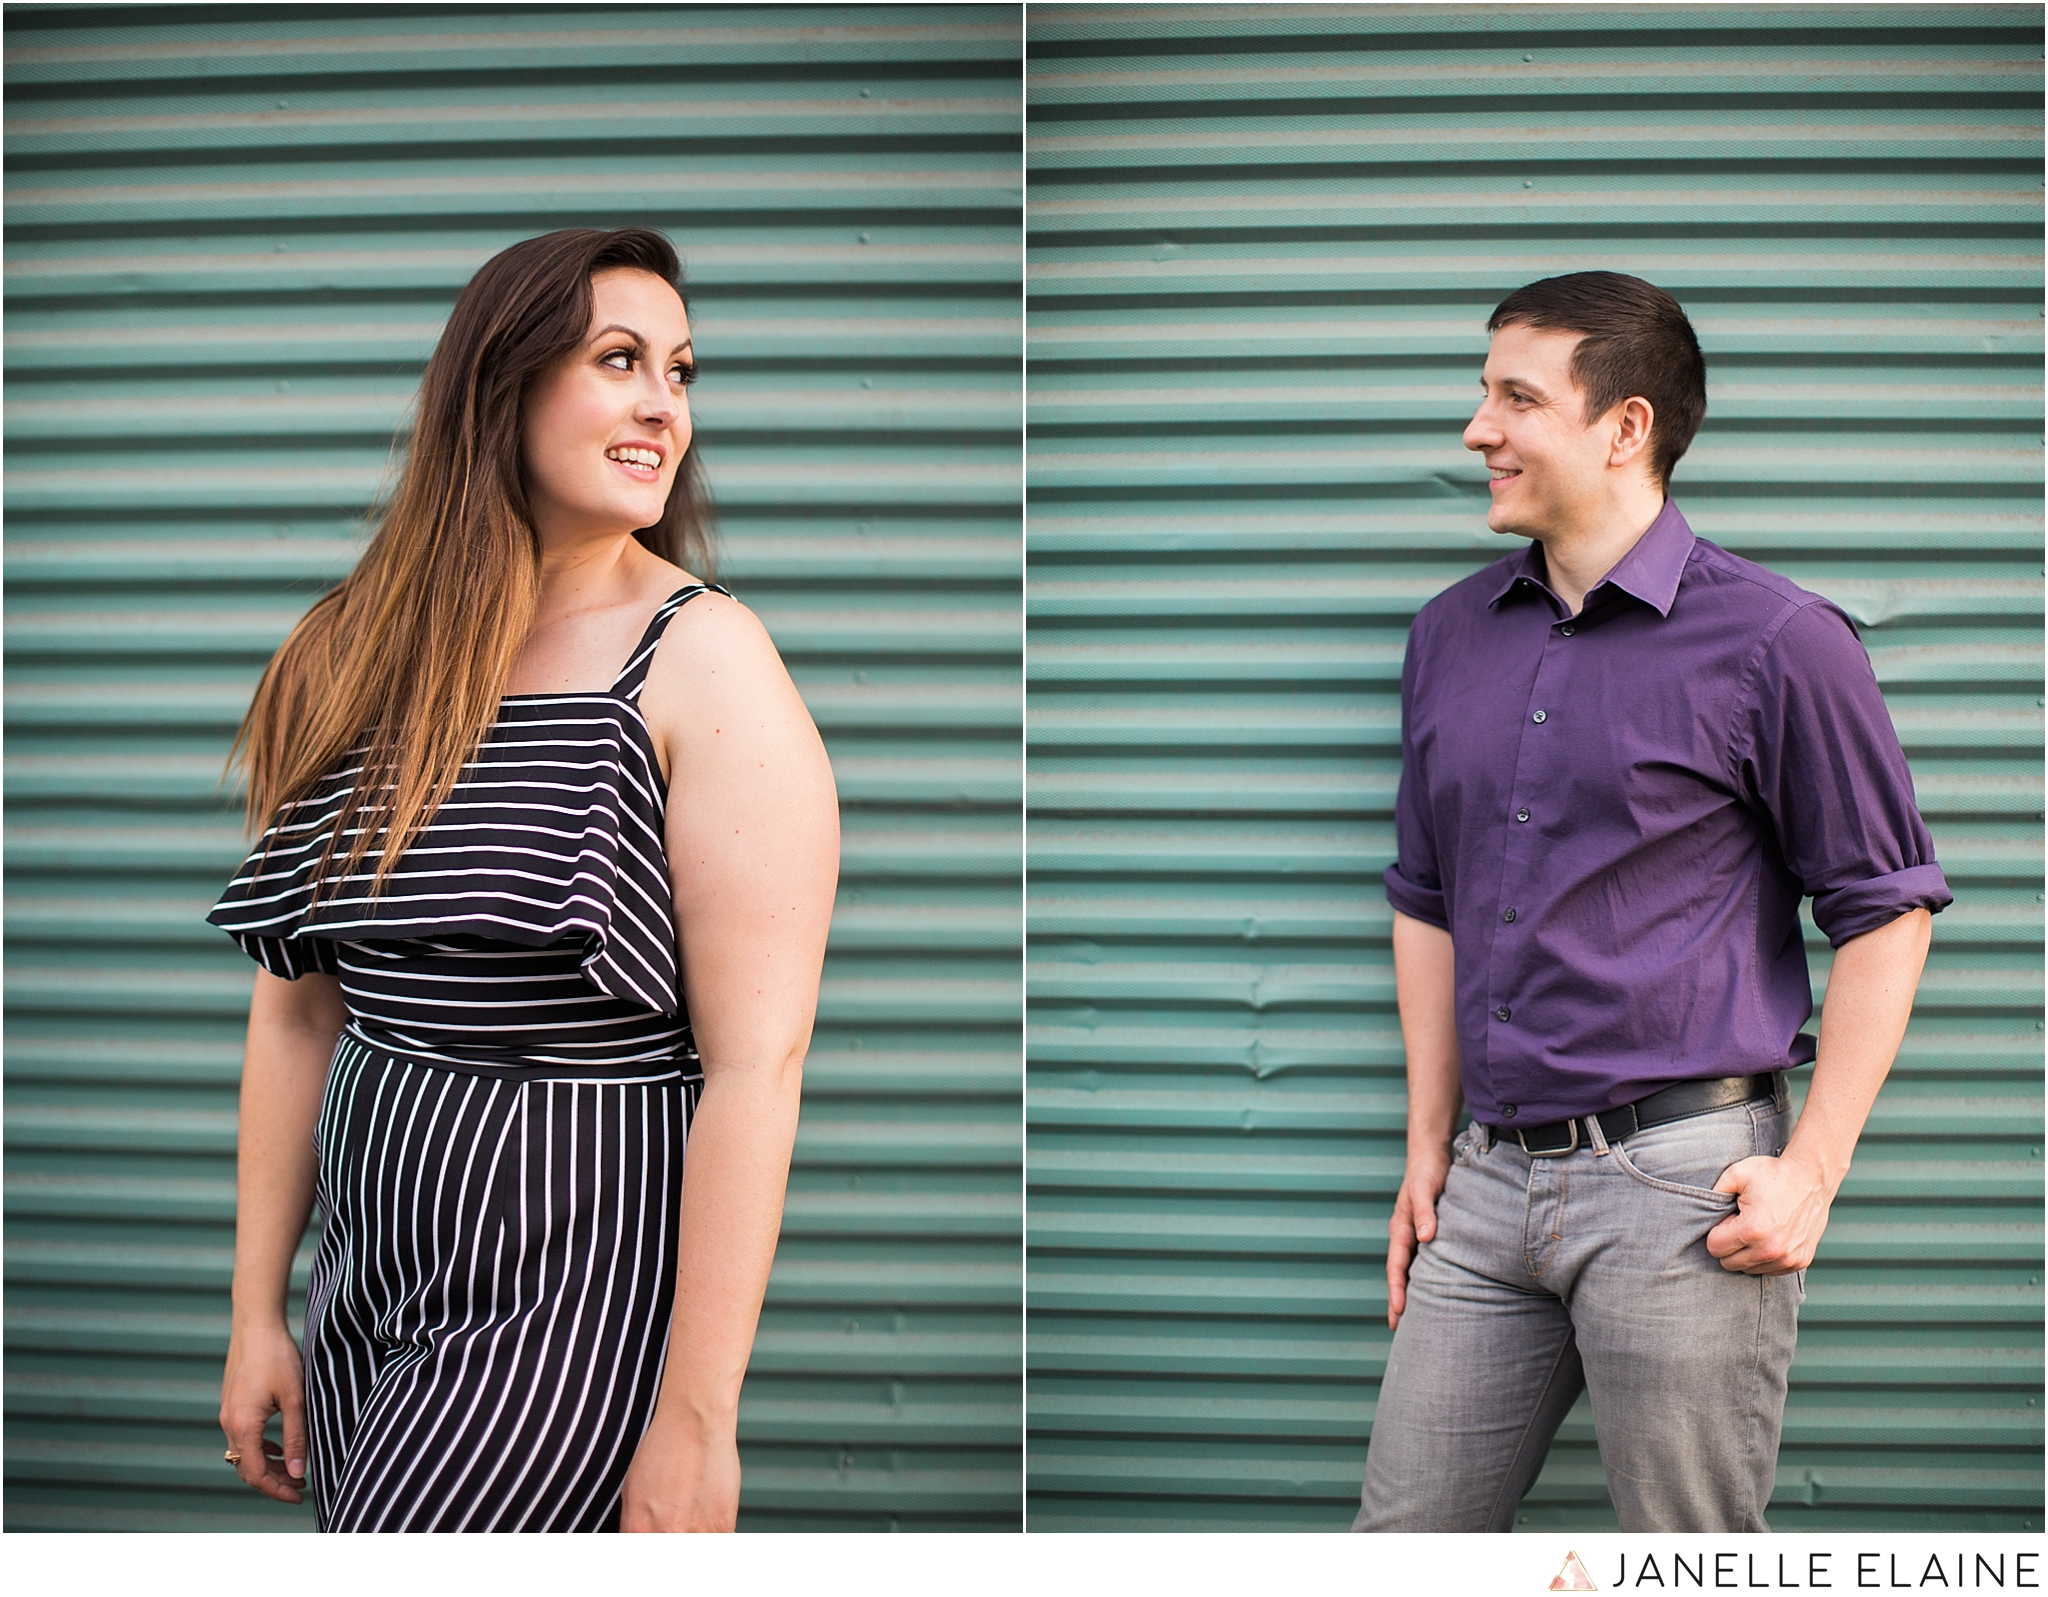 karen ethan-georgetown engagement photos-seattle-janelle elaine photography-204.jpg